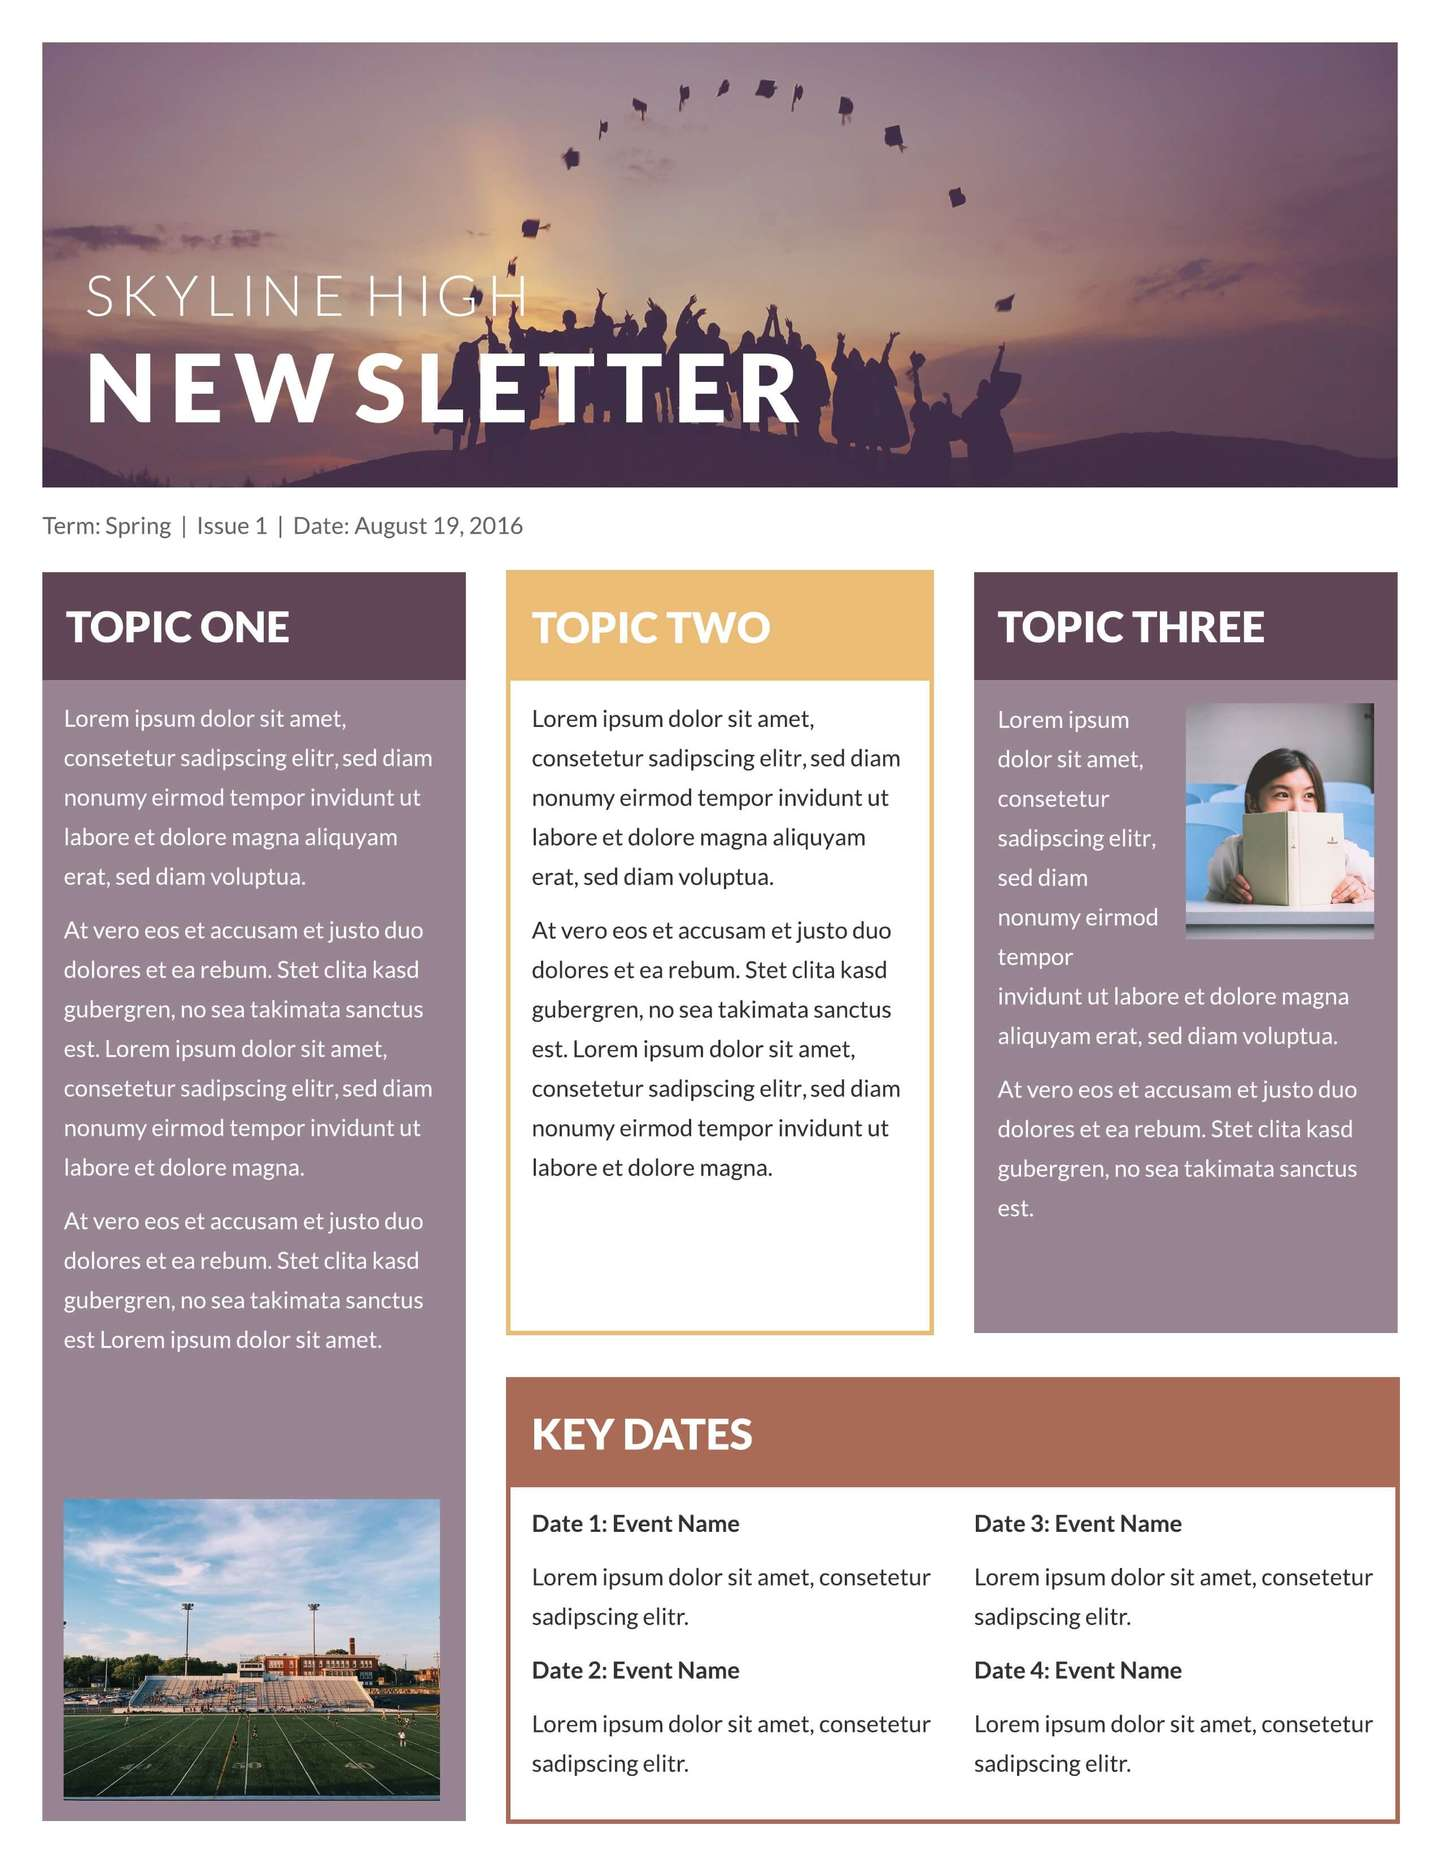 Newsletter sample templates selol ink newsletter sample templates spiritdancerdesigns Gallery